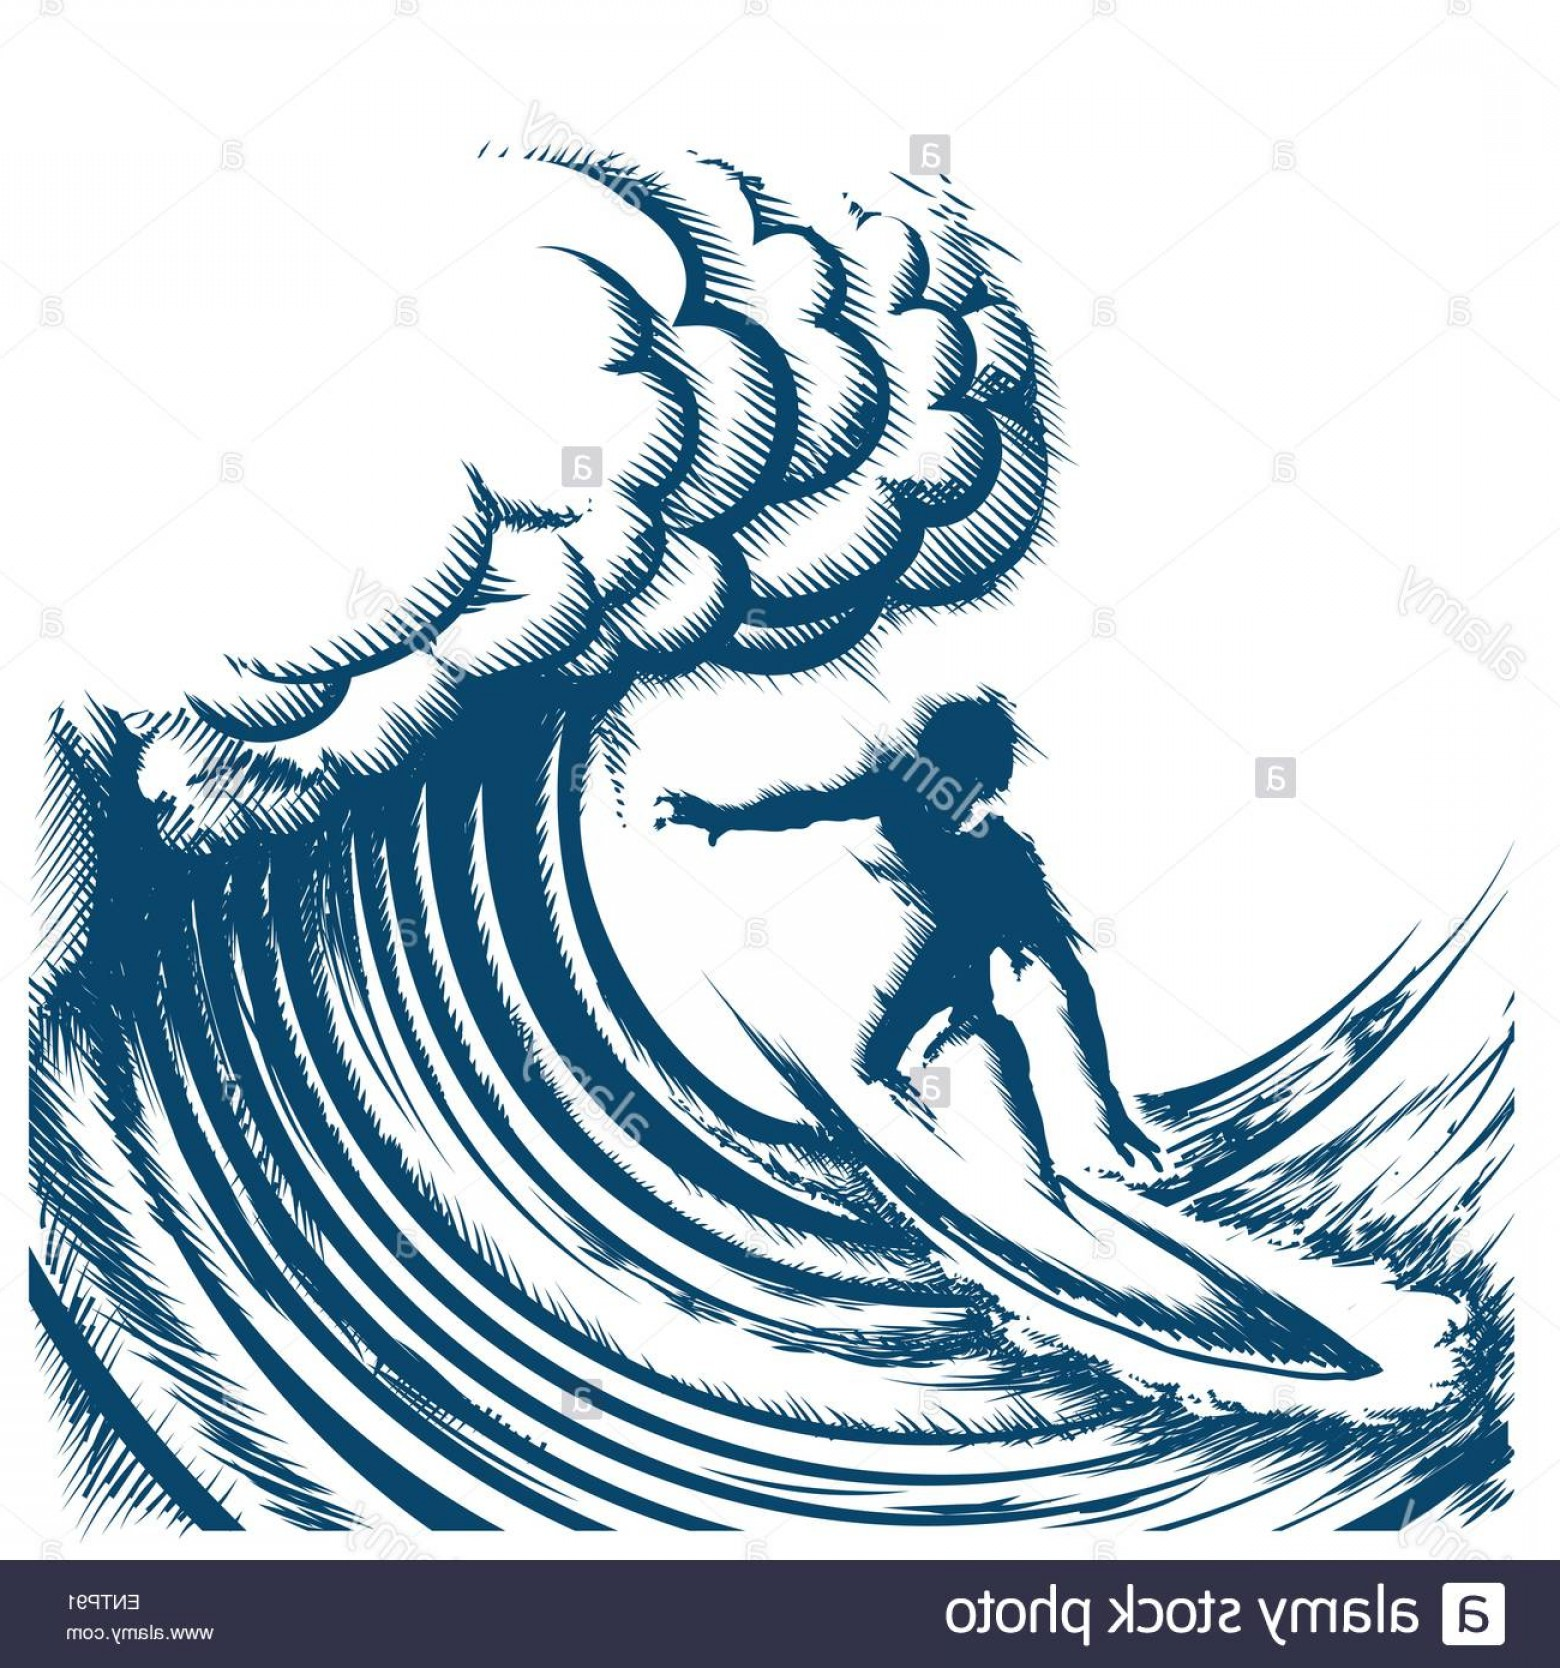 Waves With Surfer Silhouette Vector: Stock Photo Surfer Riding Big Wave Drawn In Retro Engraving Style Isolated On